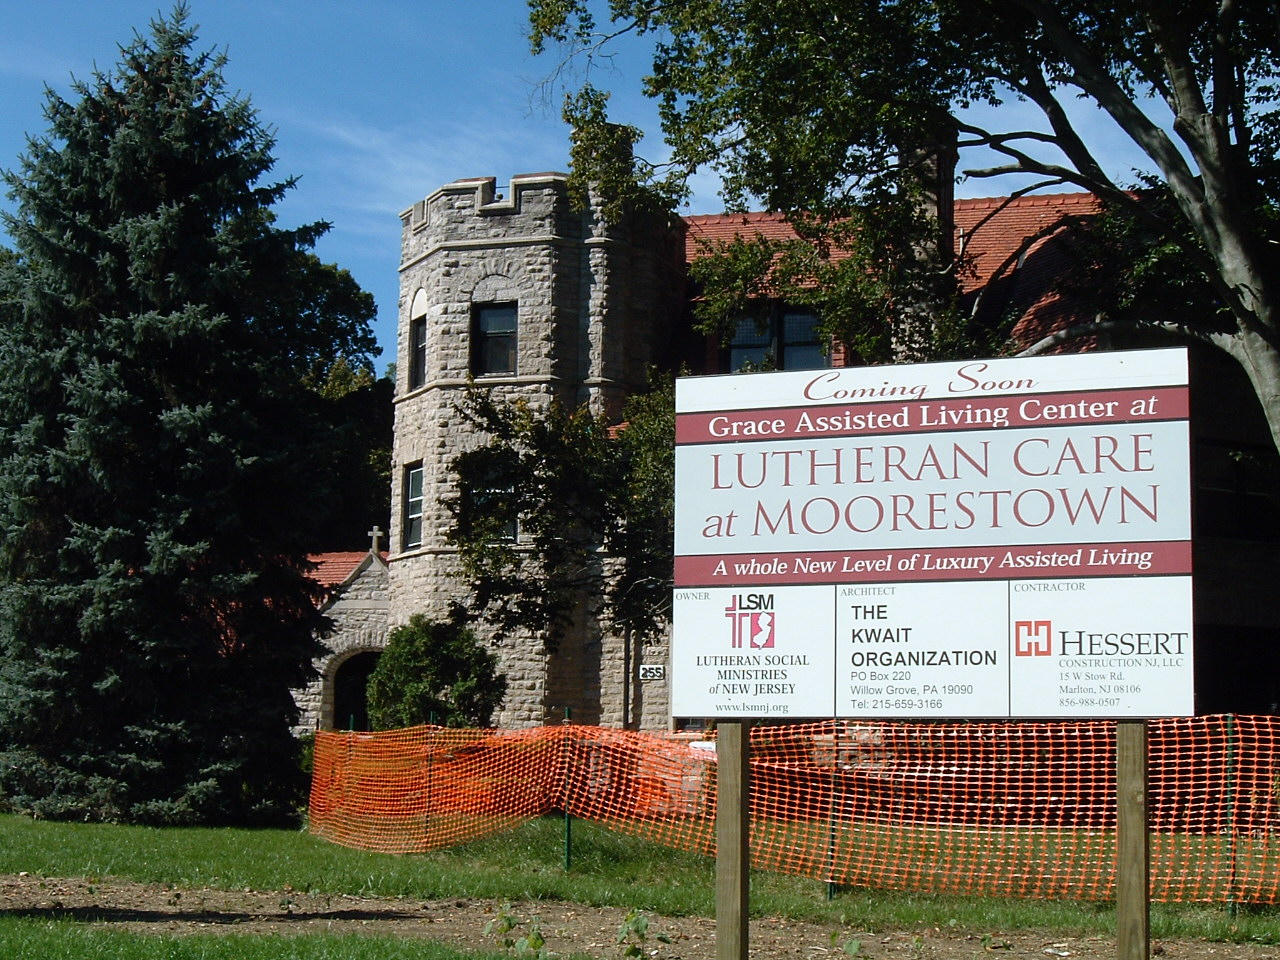 Grace Assisted Living Center at Lutheran Care at Moorestown